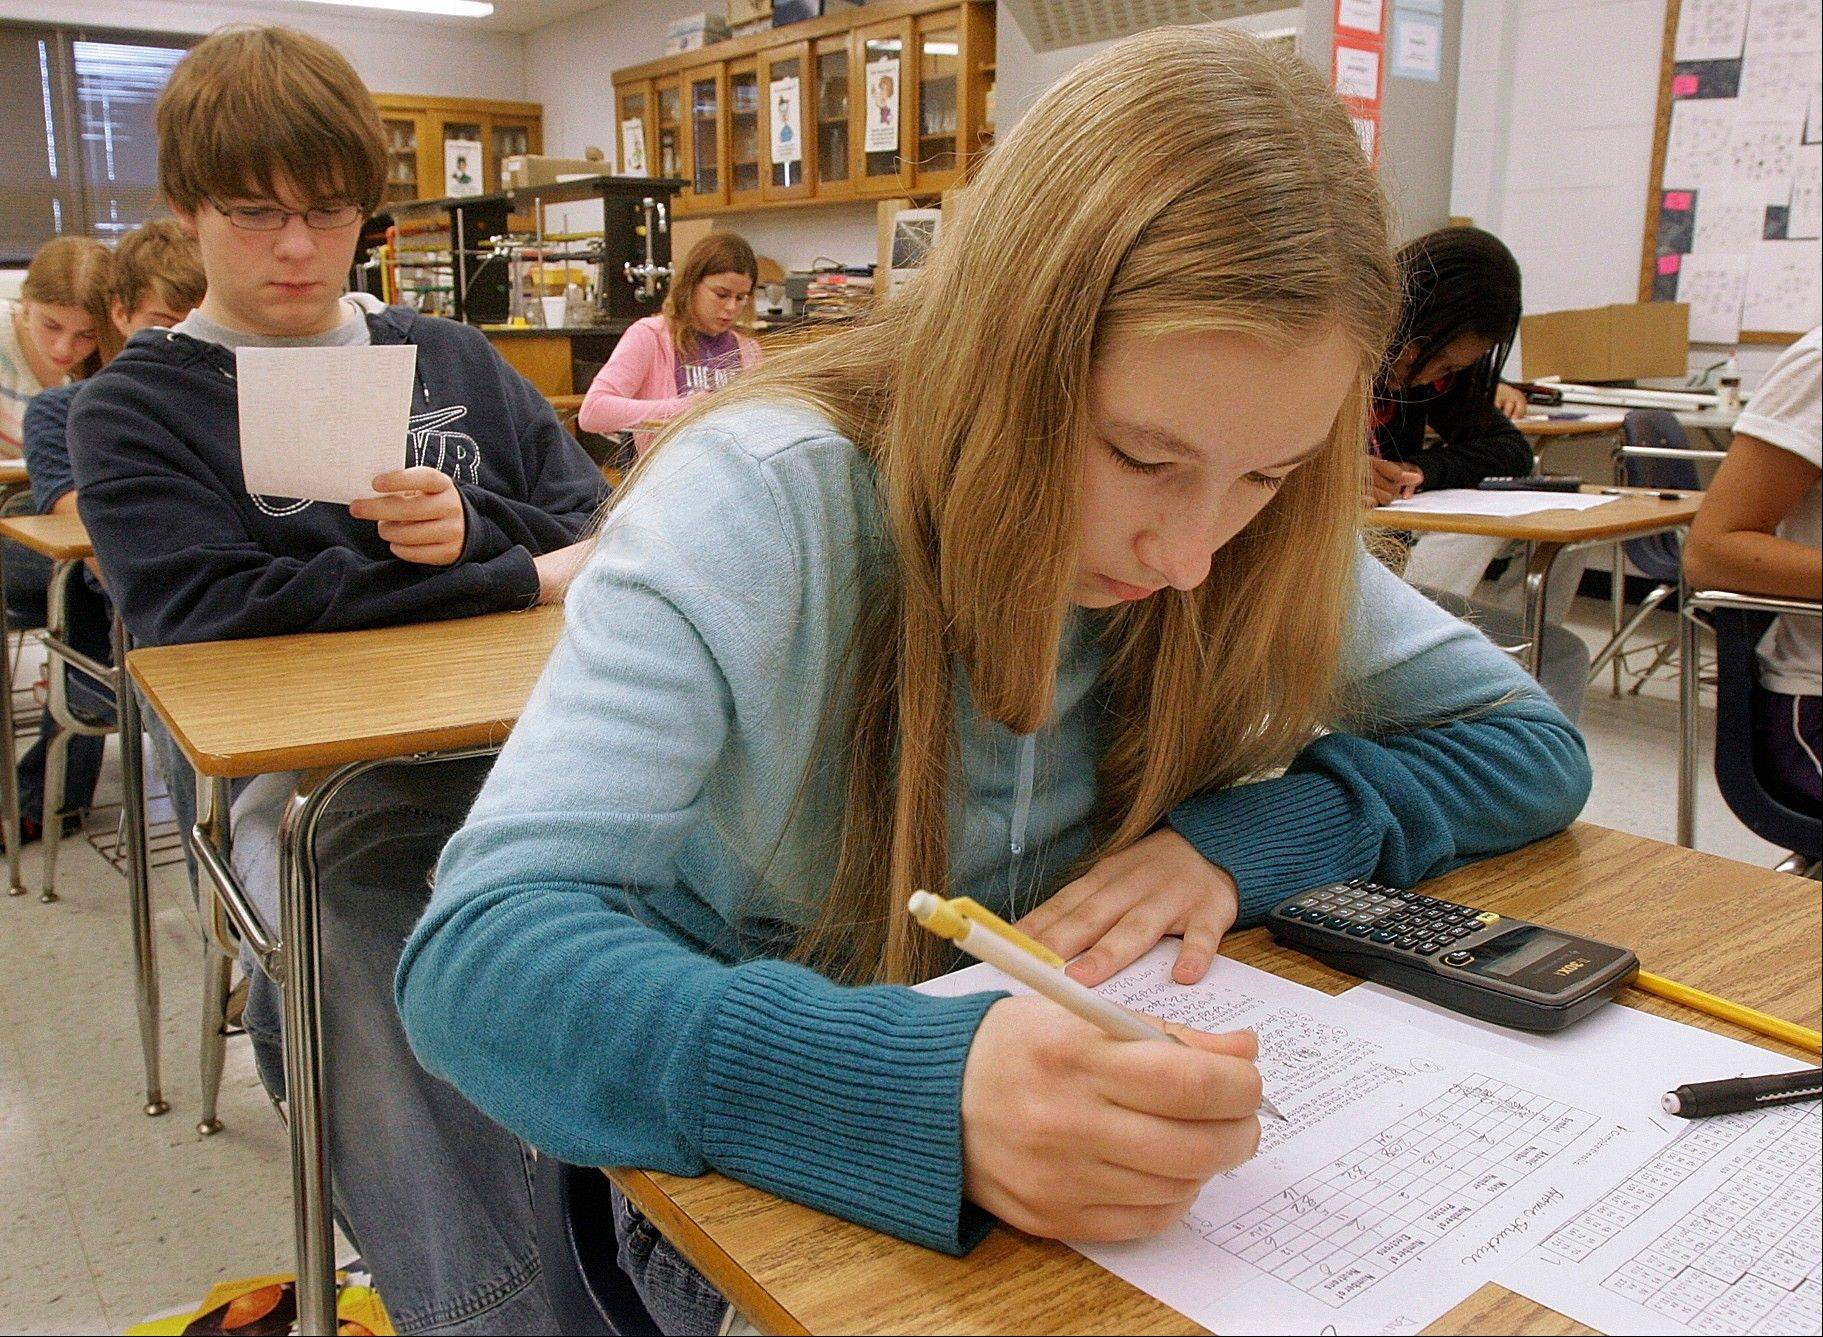 Tenth grade students take a chemistry test while in class at Springfield High School in Springfield. Illinois high school juniors will be tested on writing skills for the first time in years next spring during state standardized tests.